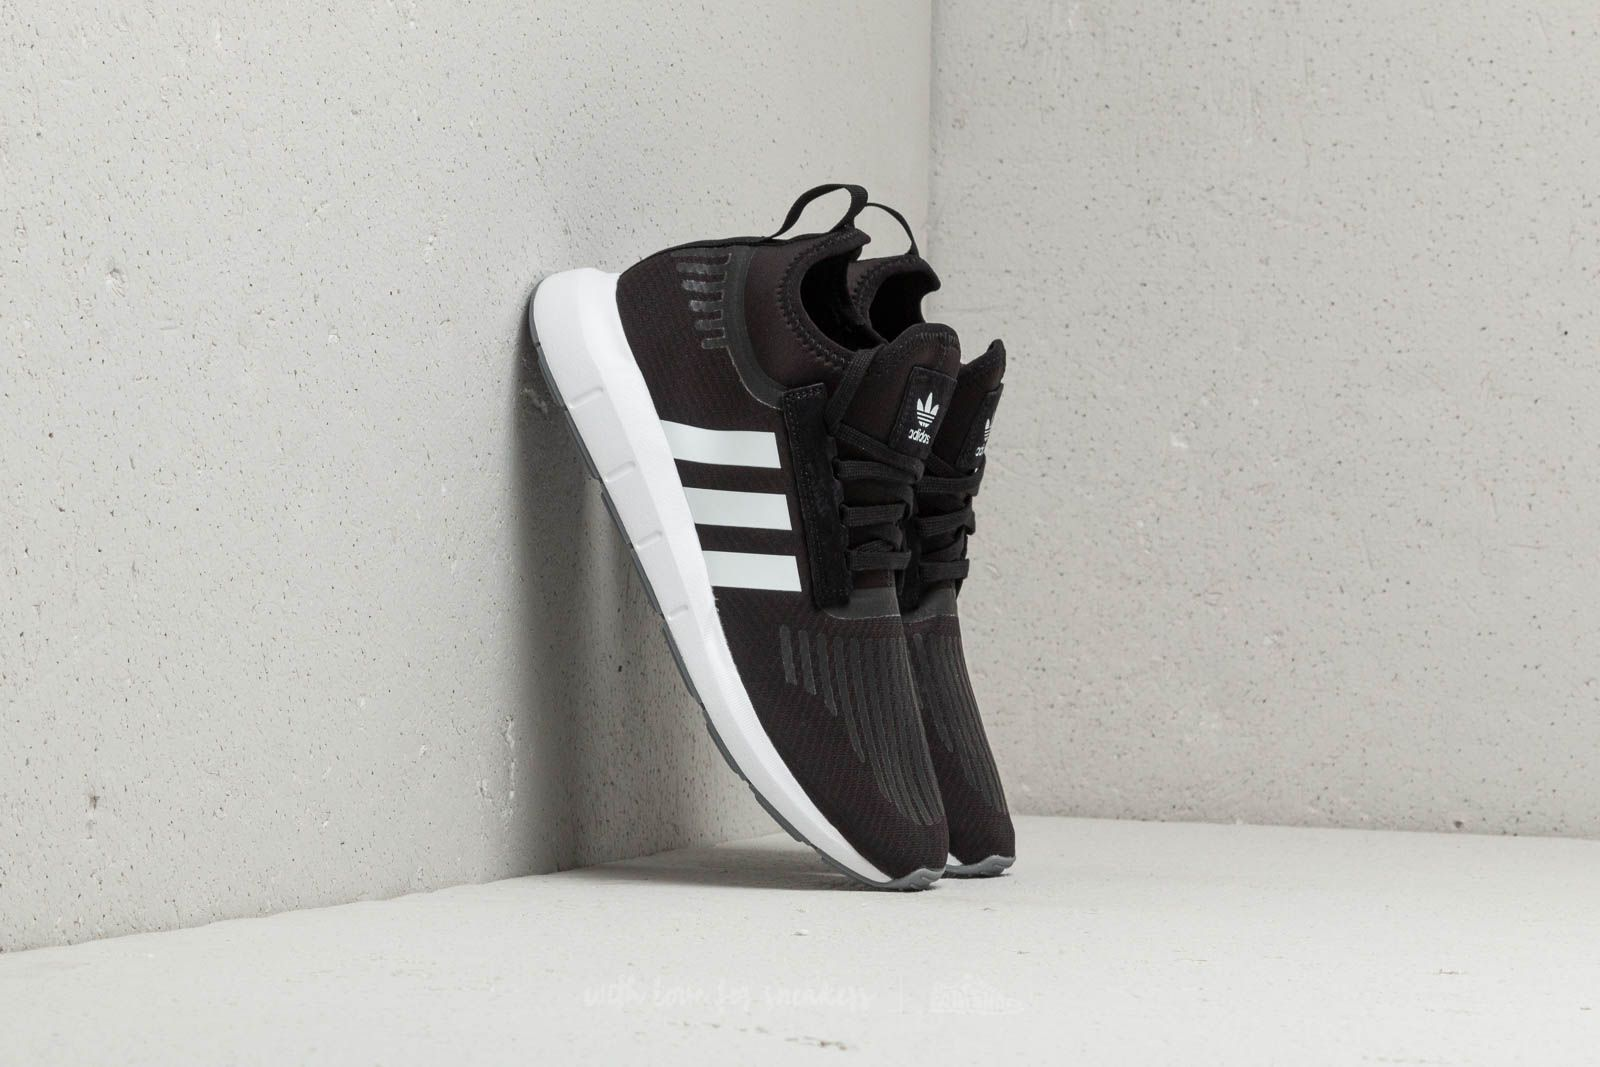 Barrier GreyFootshop Swift Run Adidas White Ftw Black Core 8XPnO0kw